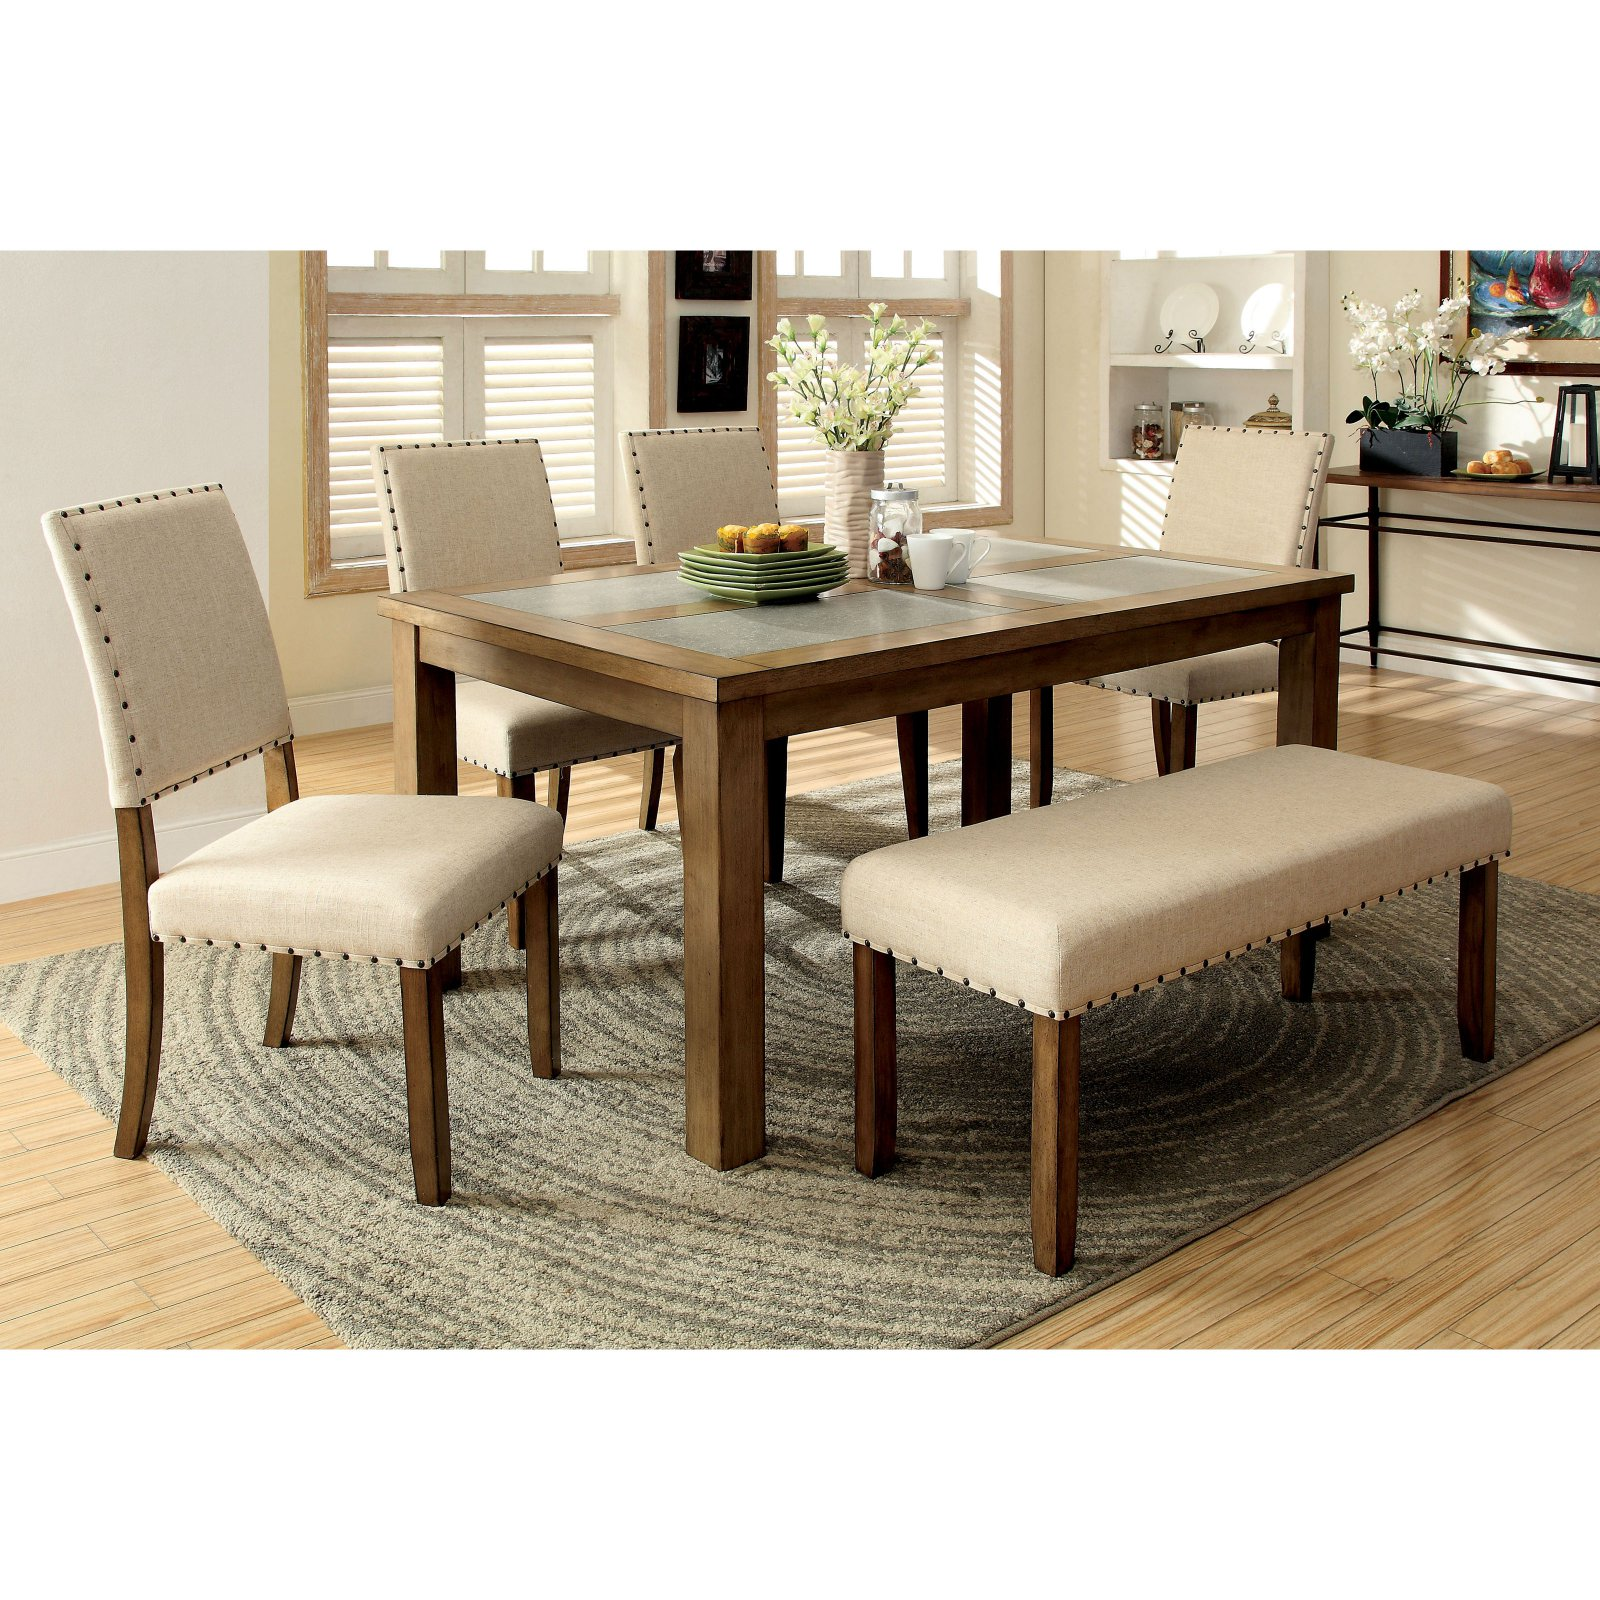 Furniture of America Kincade Dining Table